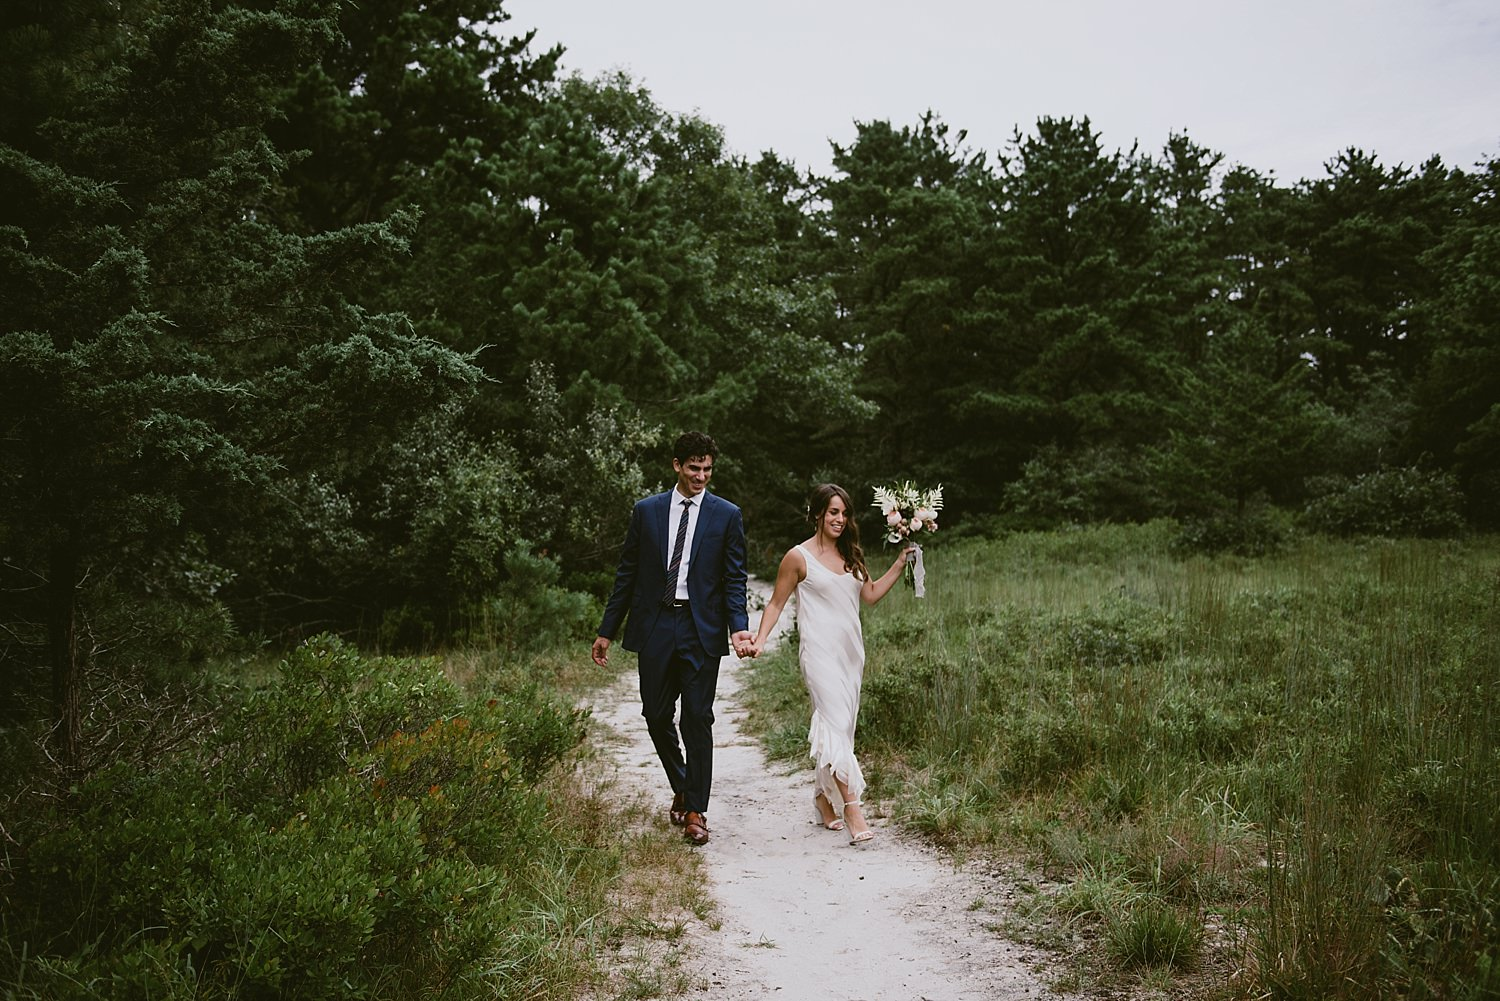 Groom and Bride walking through nature